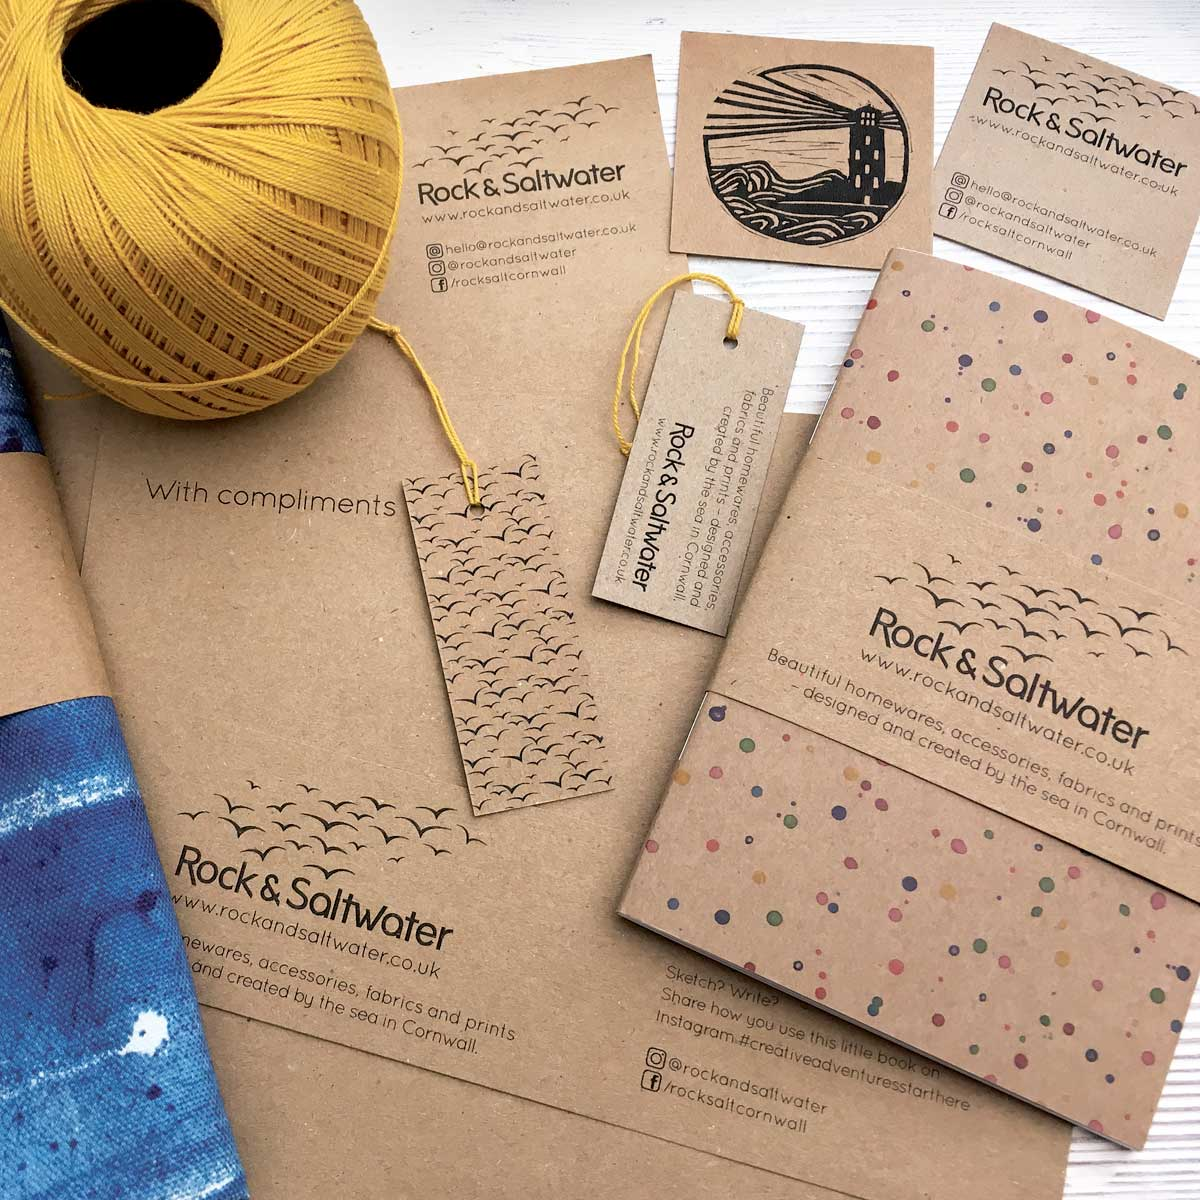 Identity, stationery, labels and packaging for Rock & Saltwater, Cornwall